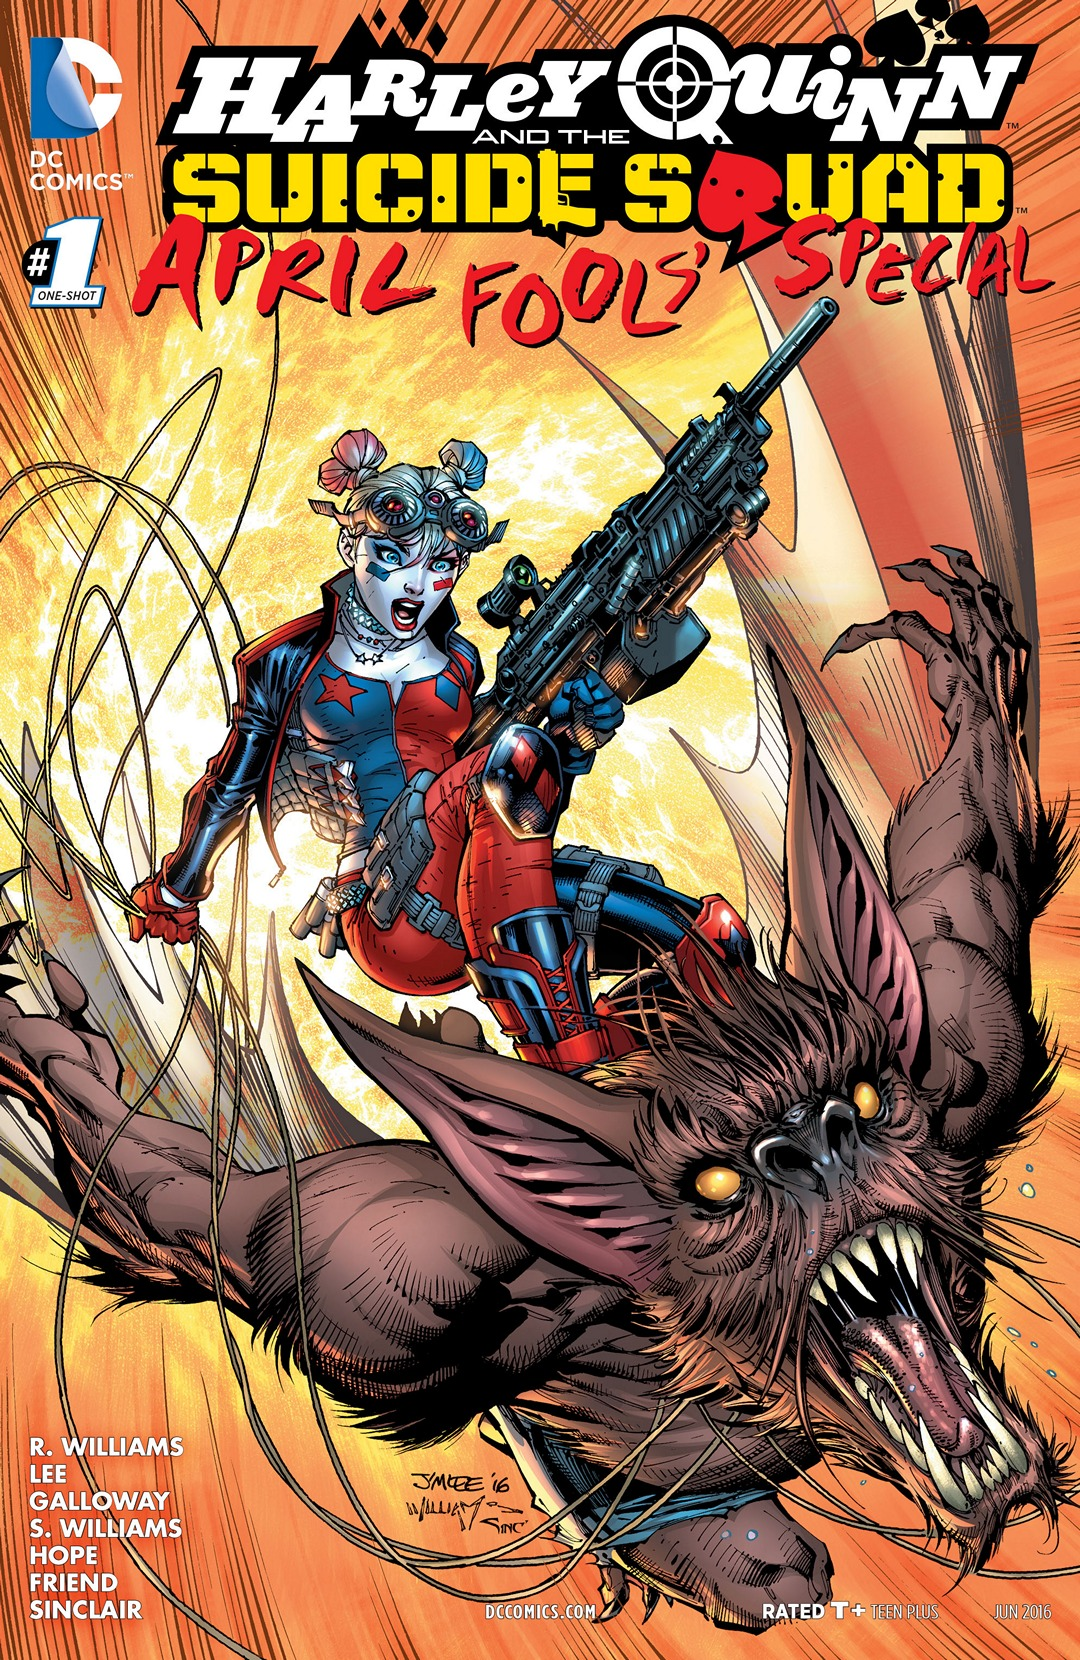 Harley Quinn and the Suicide Squad April Fool's Special Vol 1 1